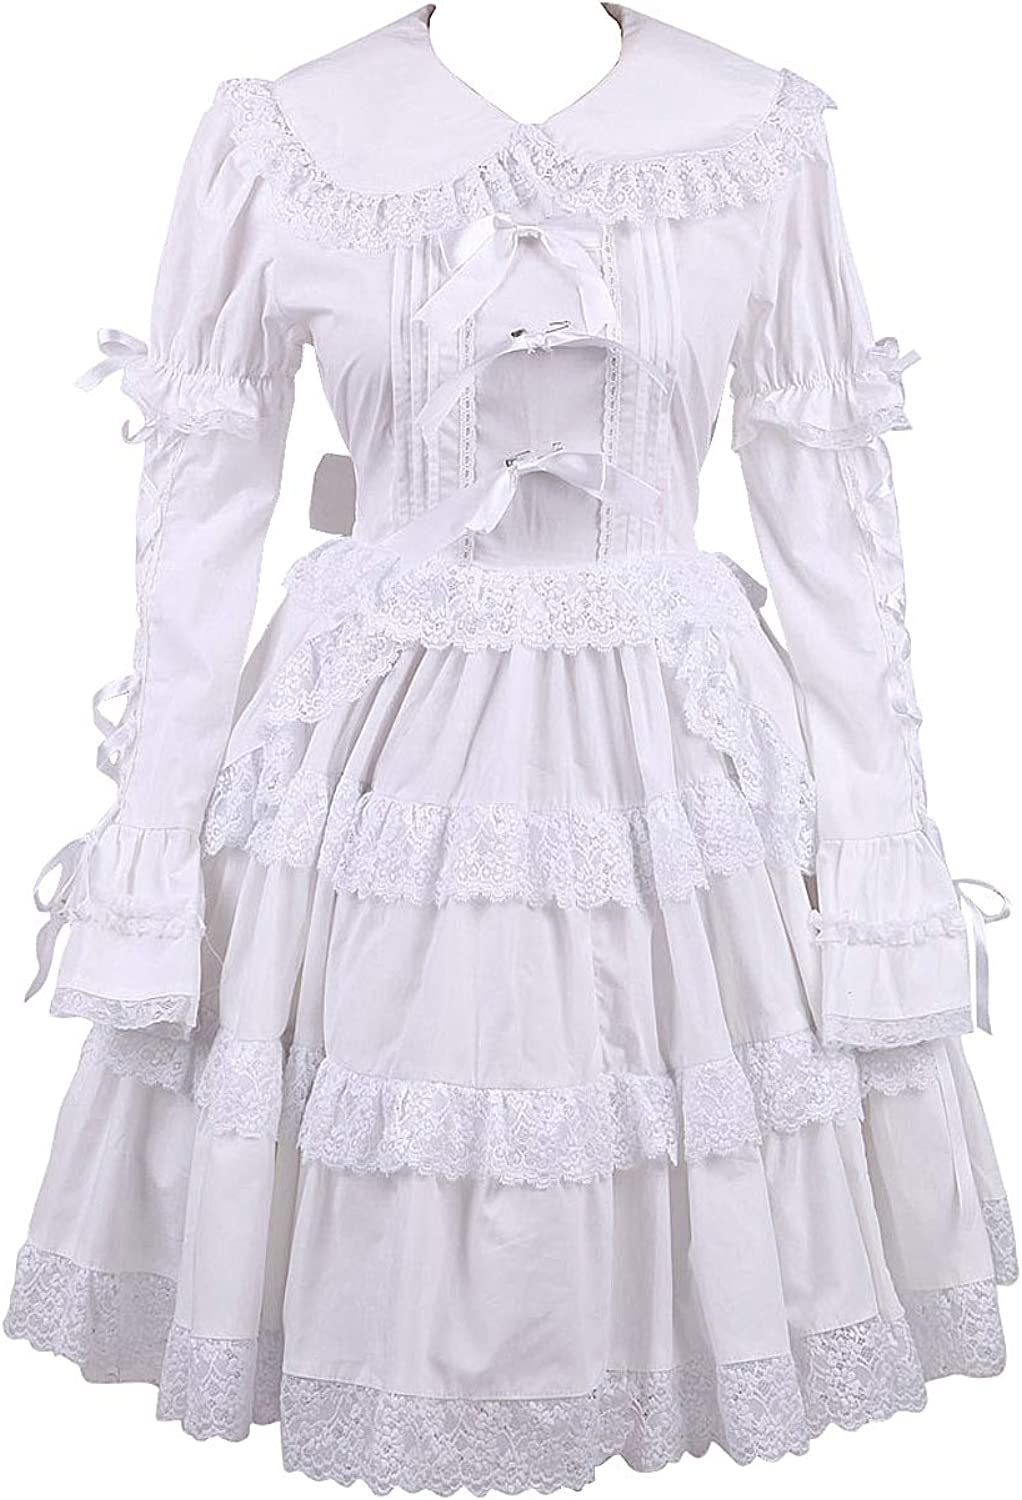 Antaina White Cotton Sweet Ruffle Lace Classic Victorian Lolita Cosplay Dress